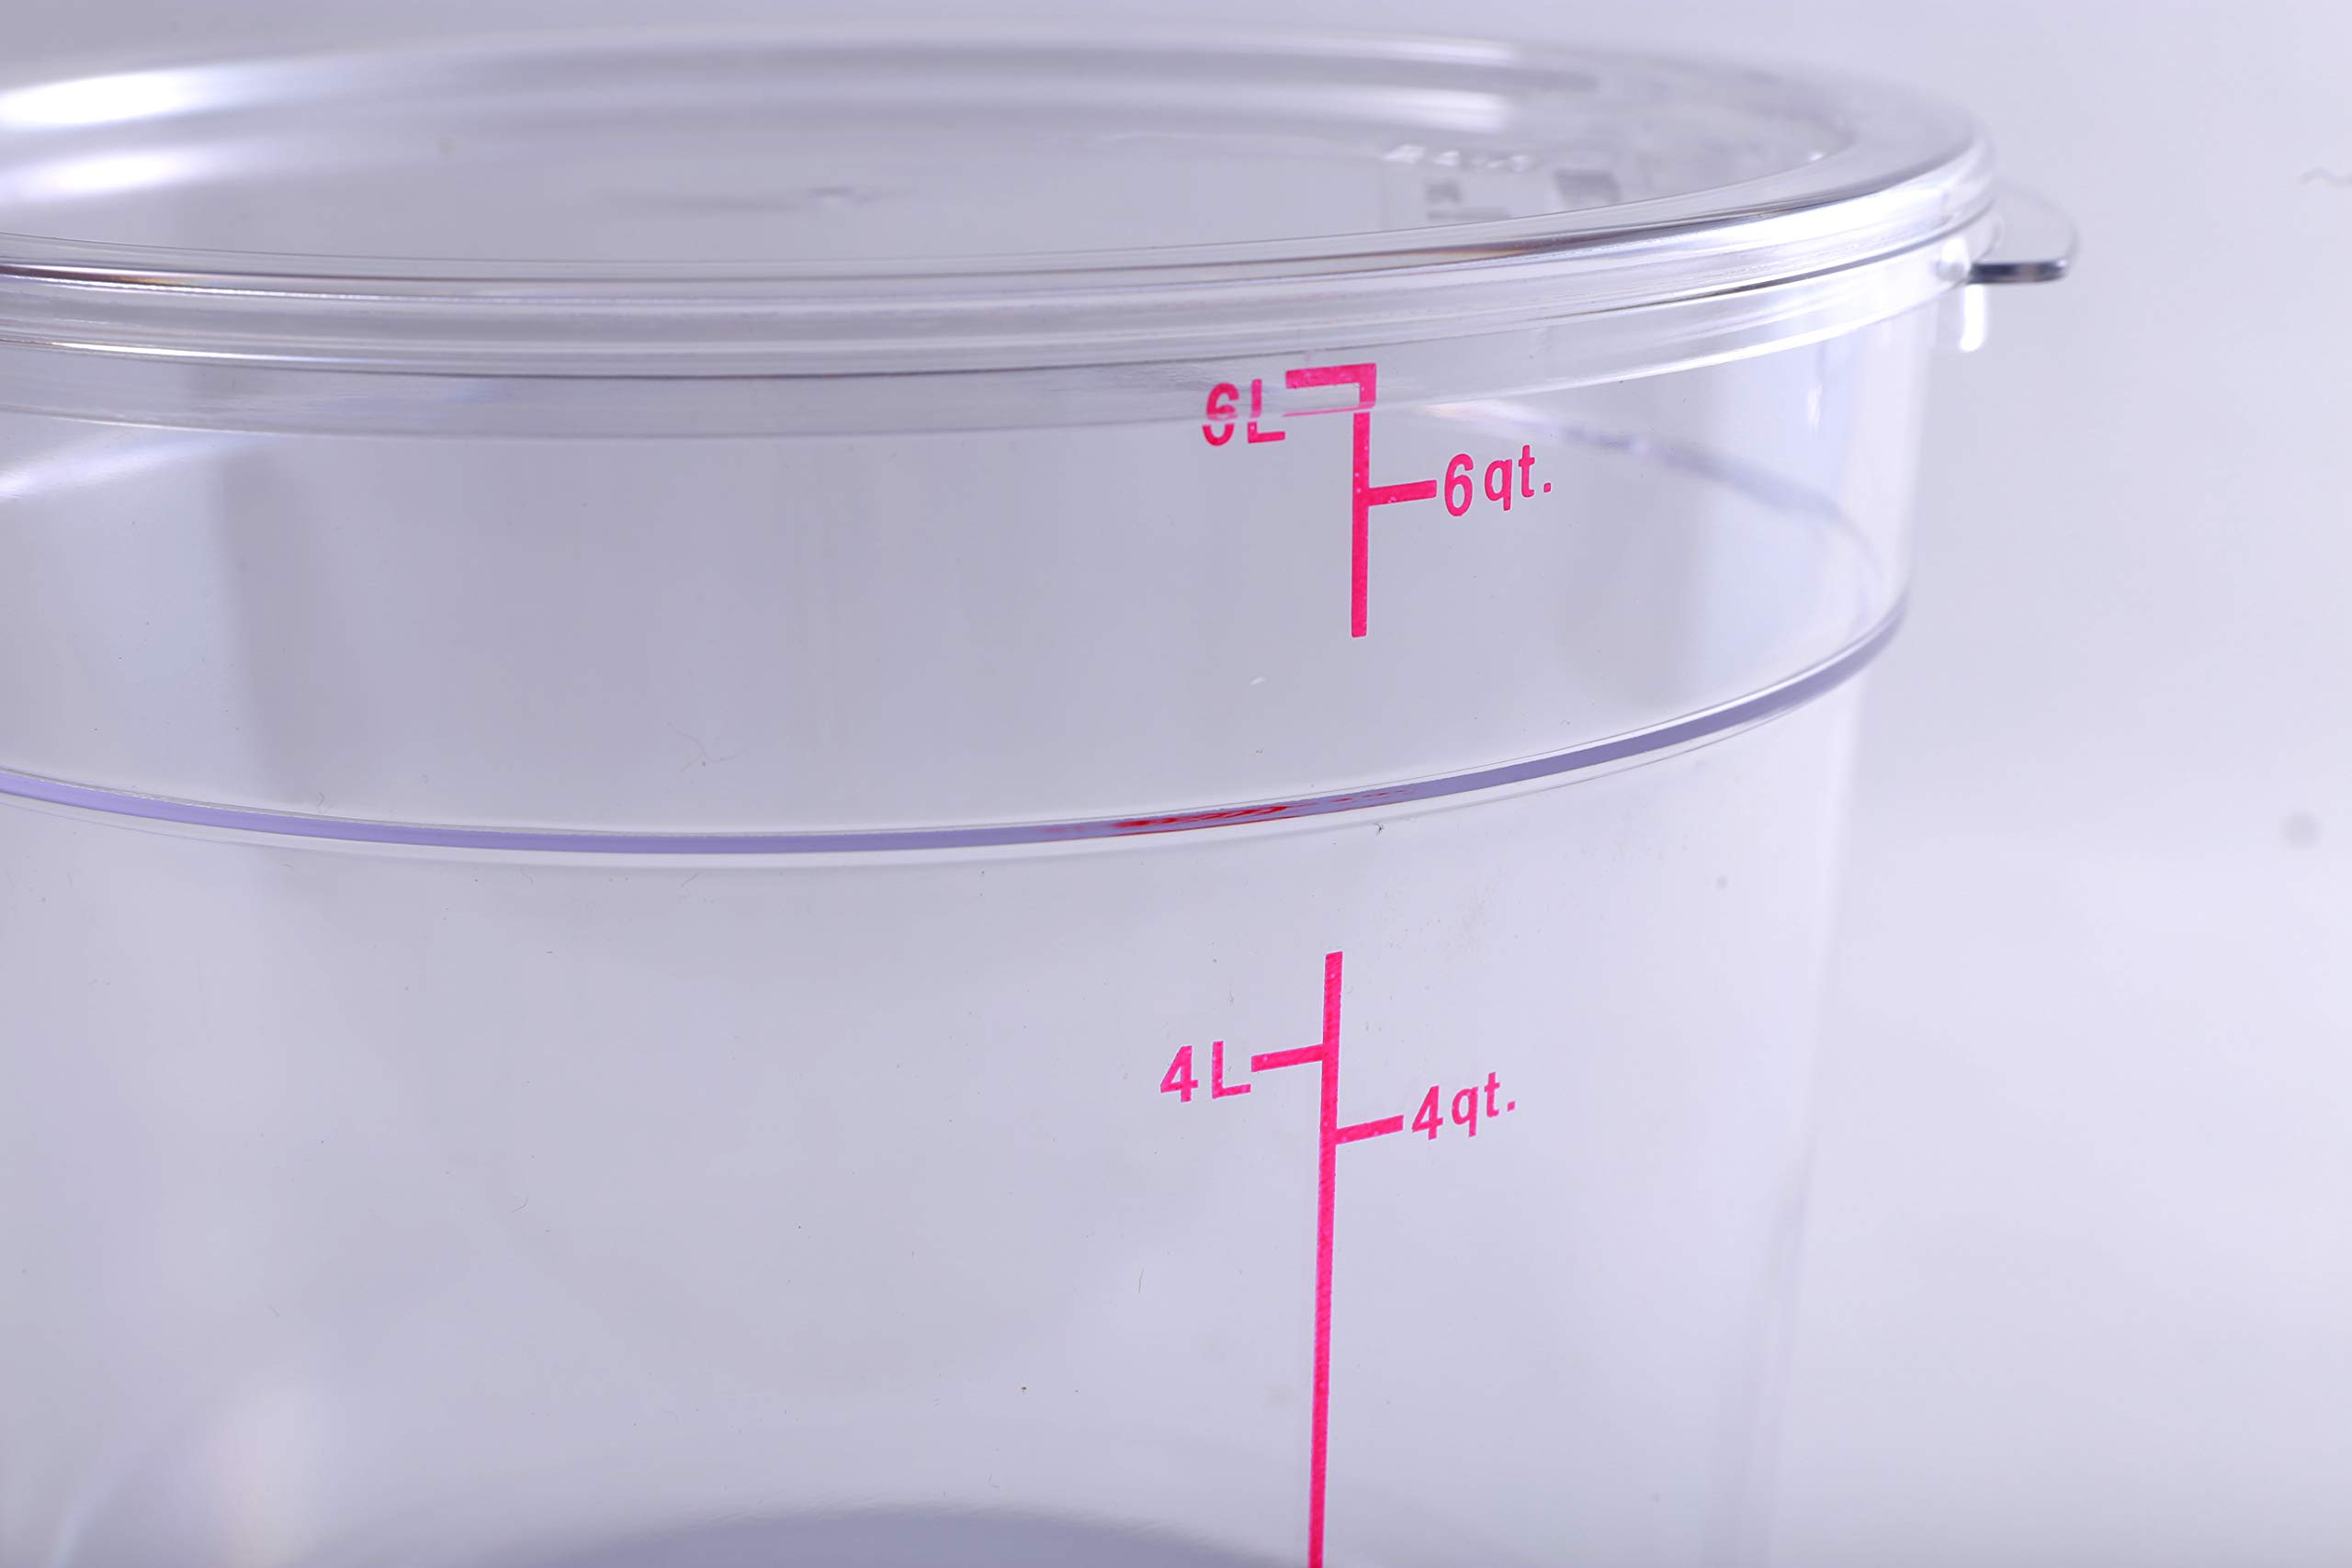 Hakka 6 Qt Commercial Grade Round Food Storage Containers with Lids,Polycarbonate,Clear - Case of 5 by HAKKA FOOD PROCESSING (Image #4)